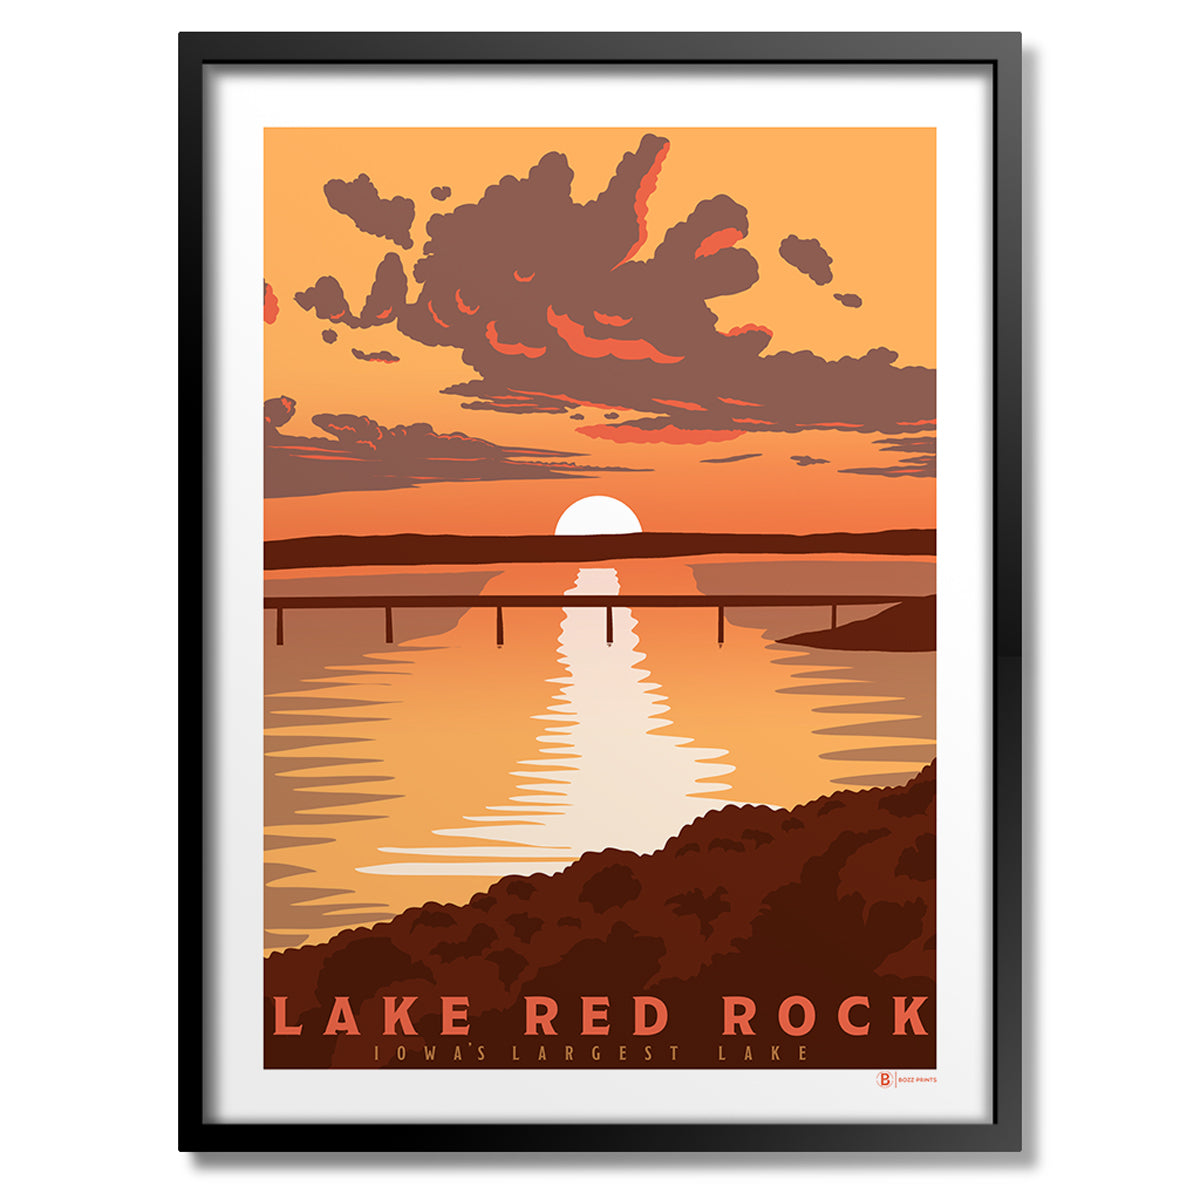 Lake Red Rock